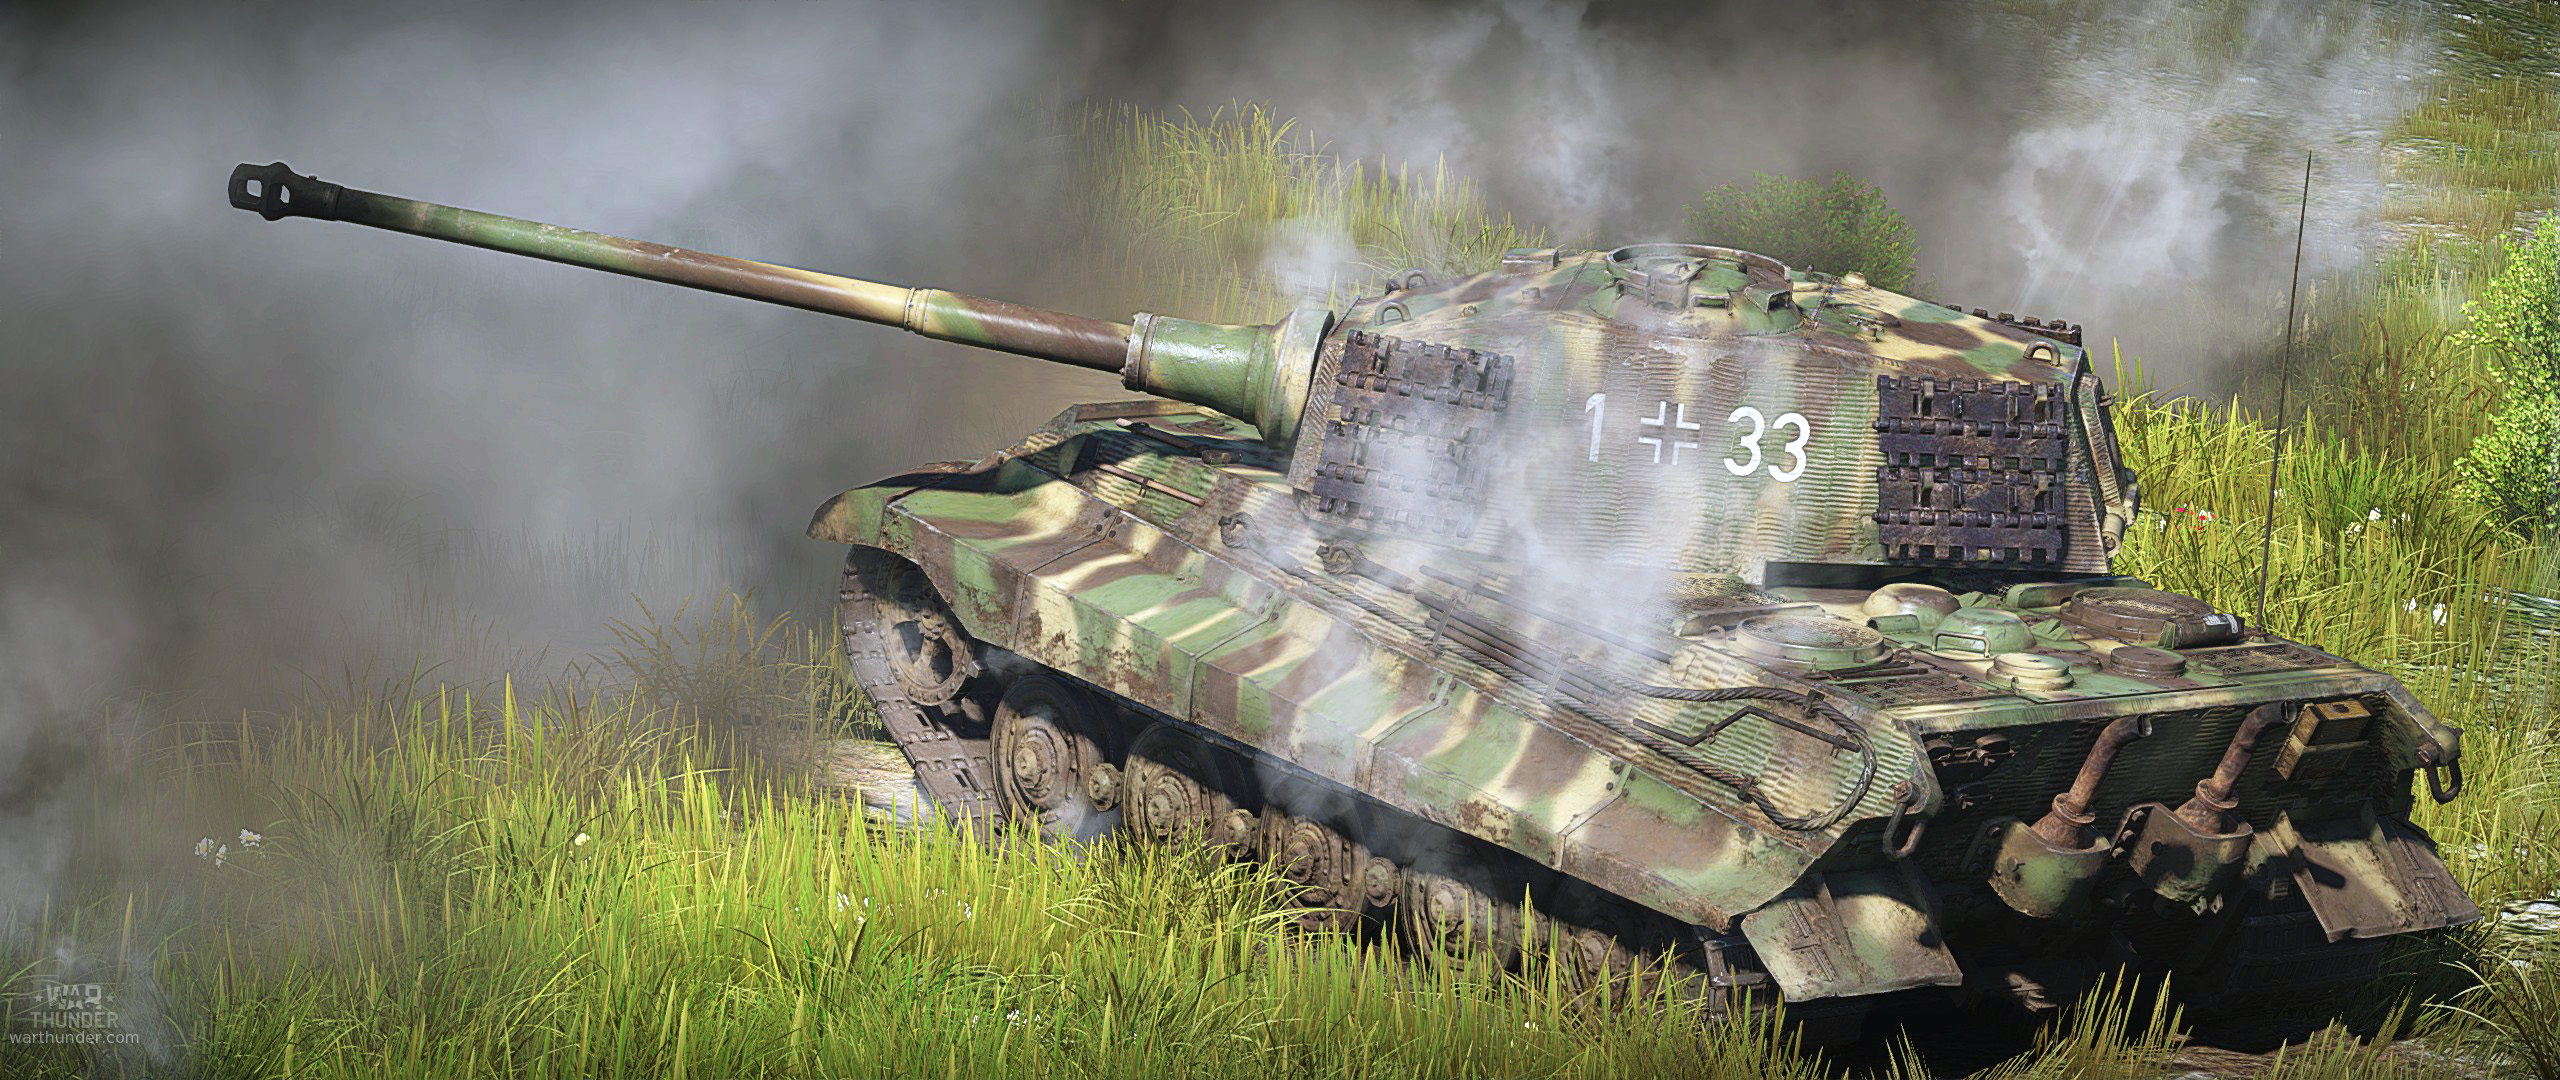 tank war live wallpaper